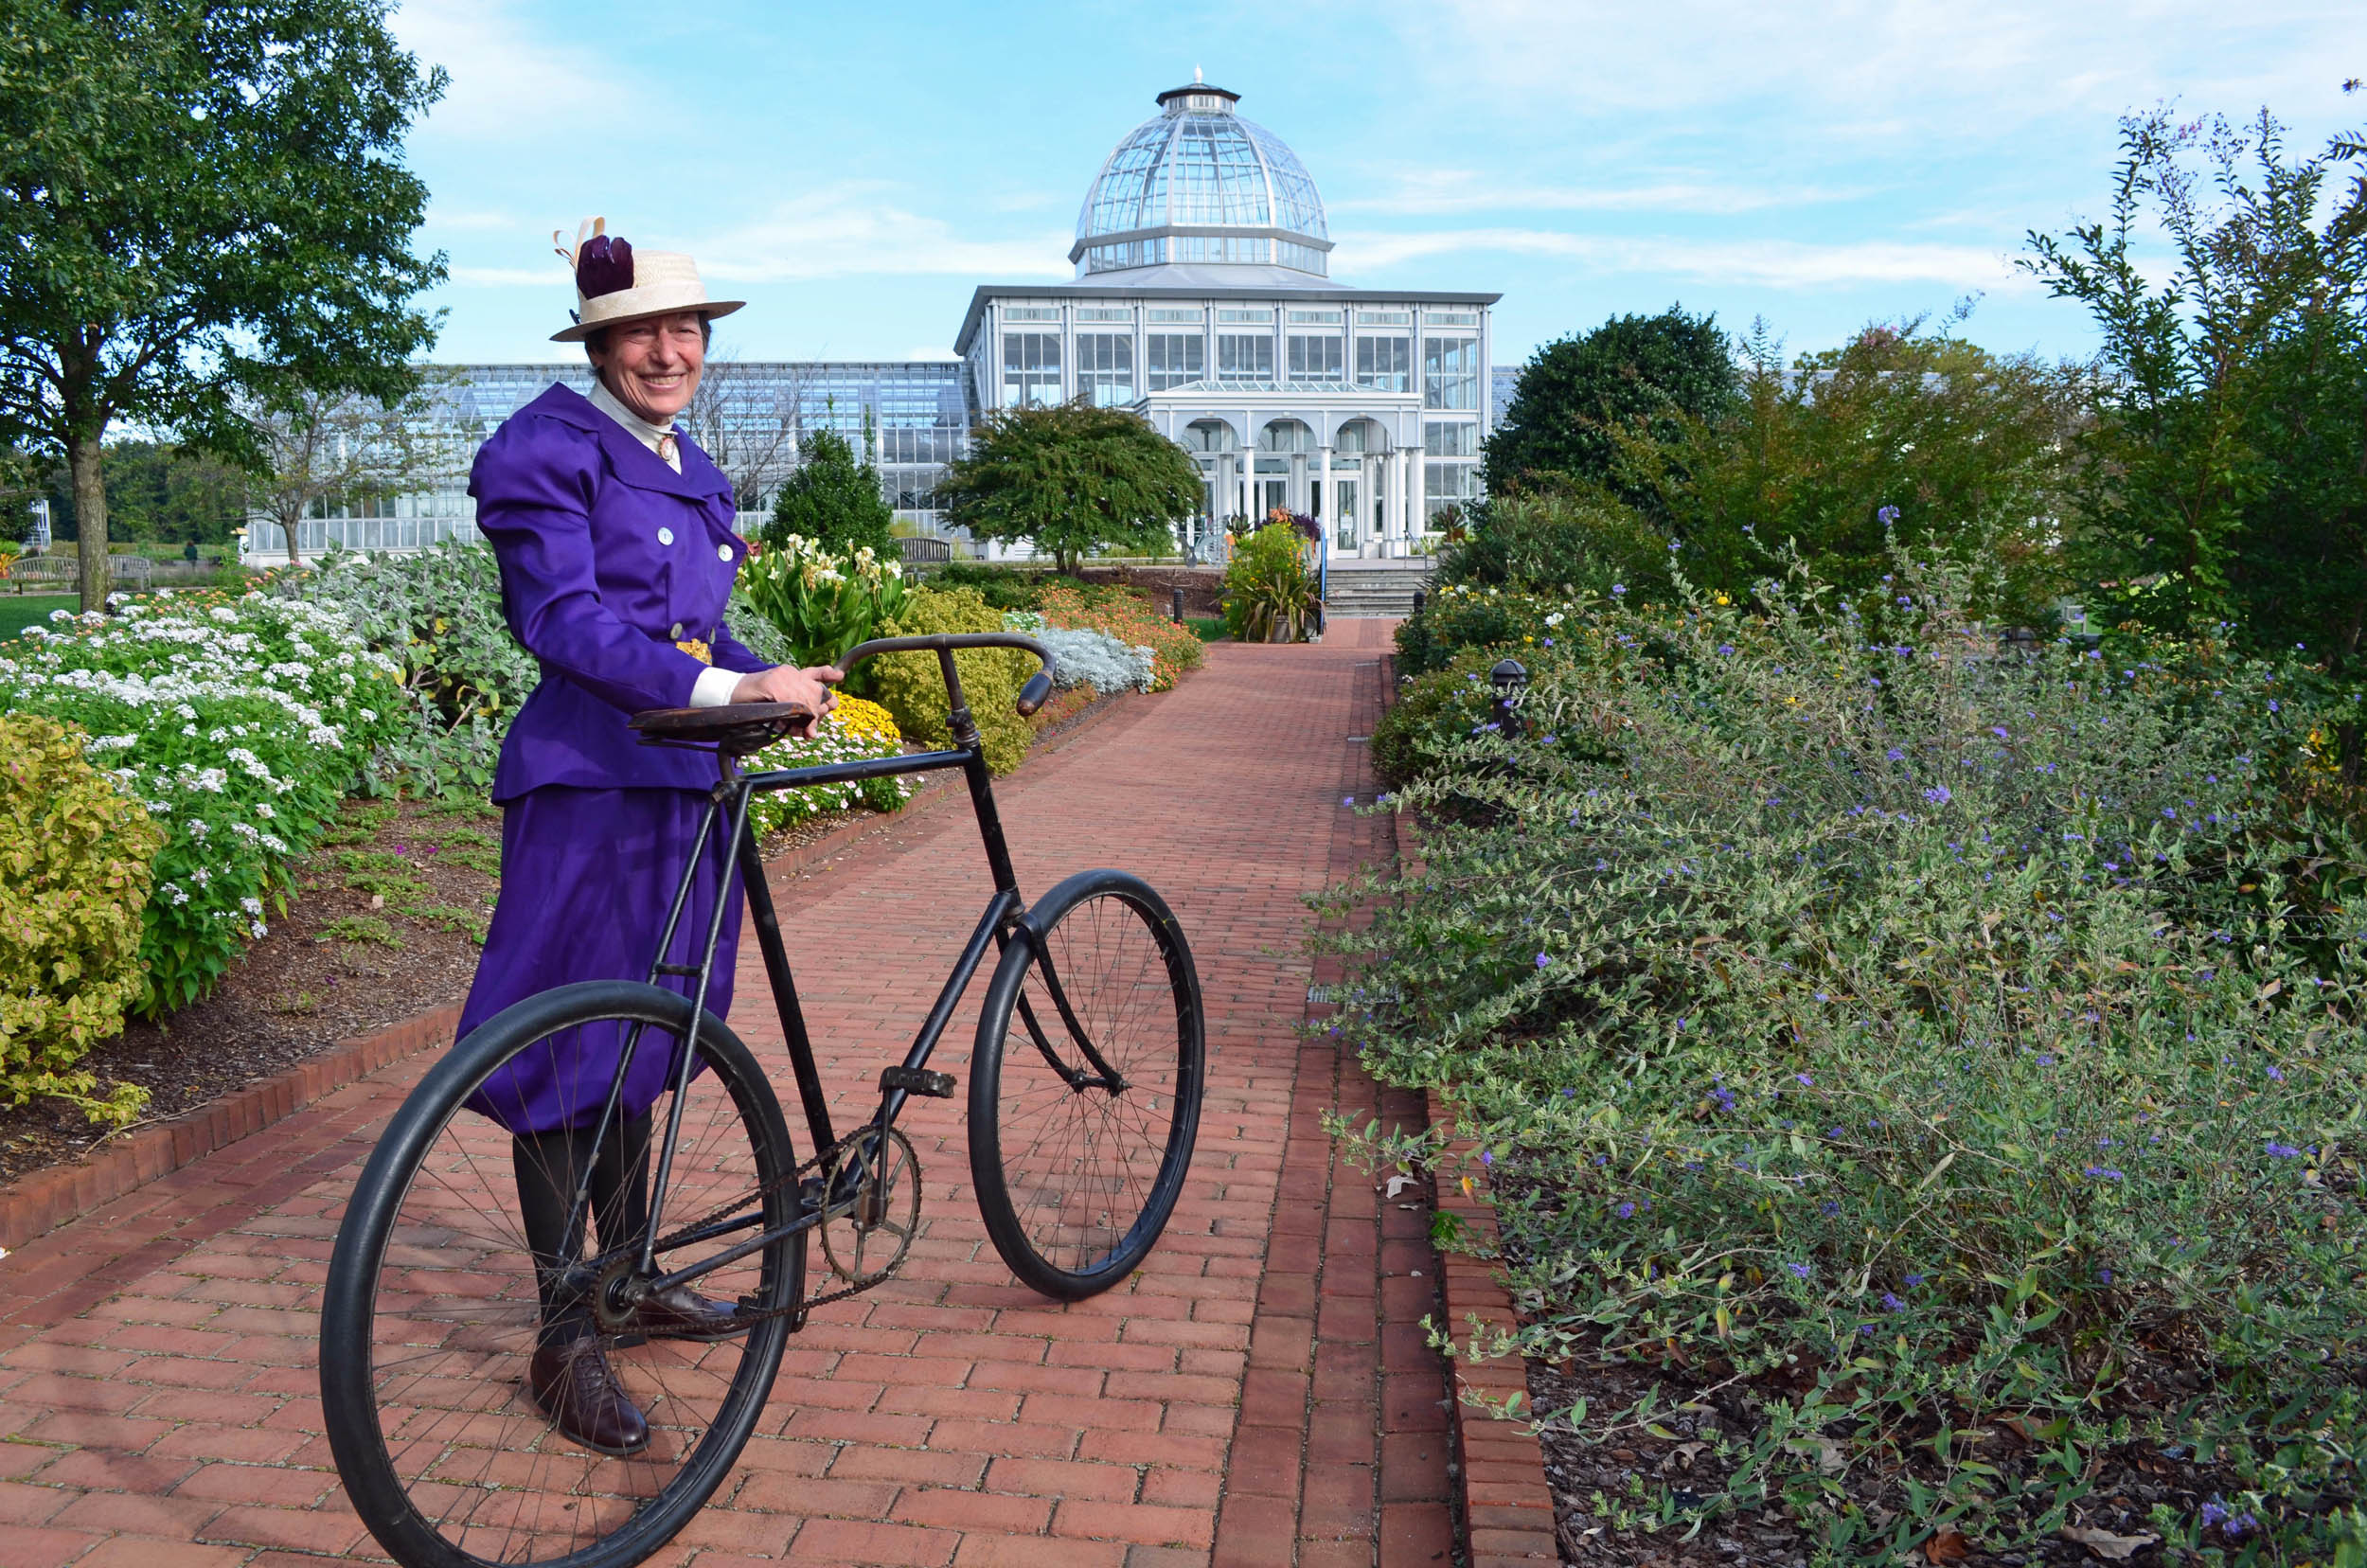 womans cycling costume inspired by 1890s lewis ginter botanical garden - Lewis Ginter Botanical Garden